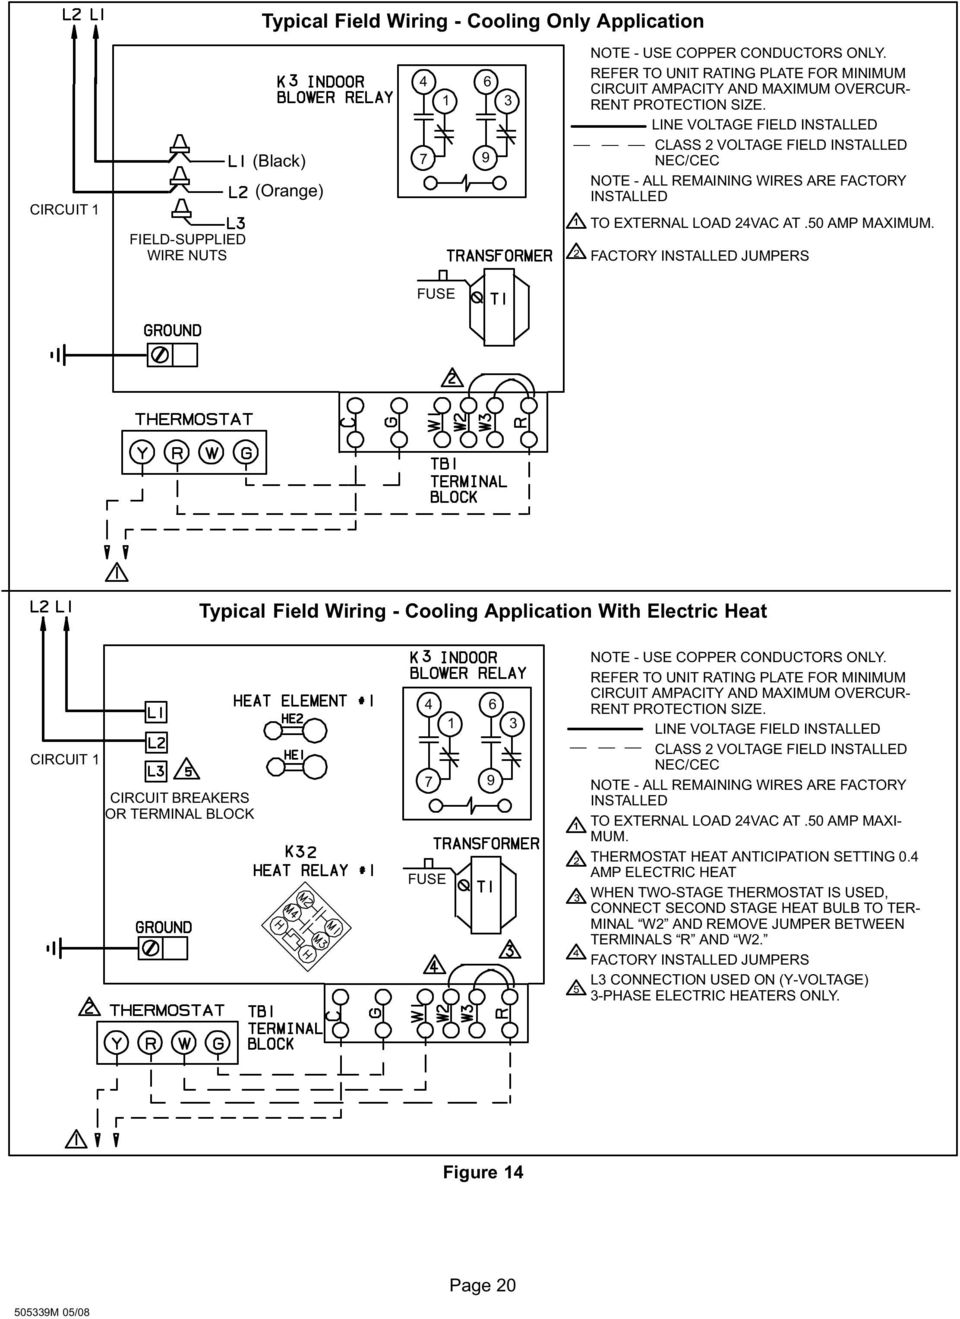 VOLTAGE FIELD INSTALLED CLASS 2 VOLTAGE FIELD INSTALLED NEC/CEC NOTE ALL  REMAINING WIRES ARE